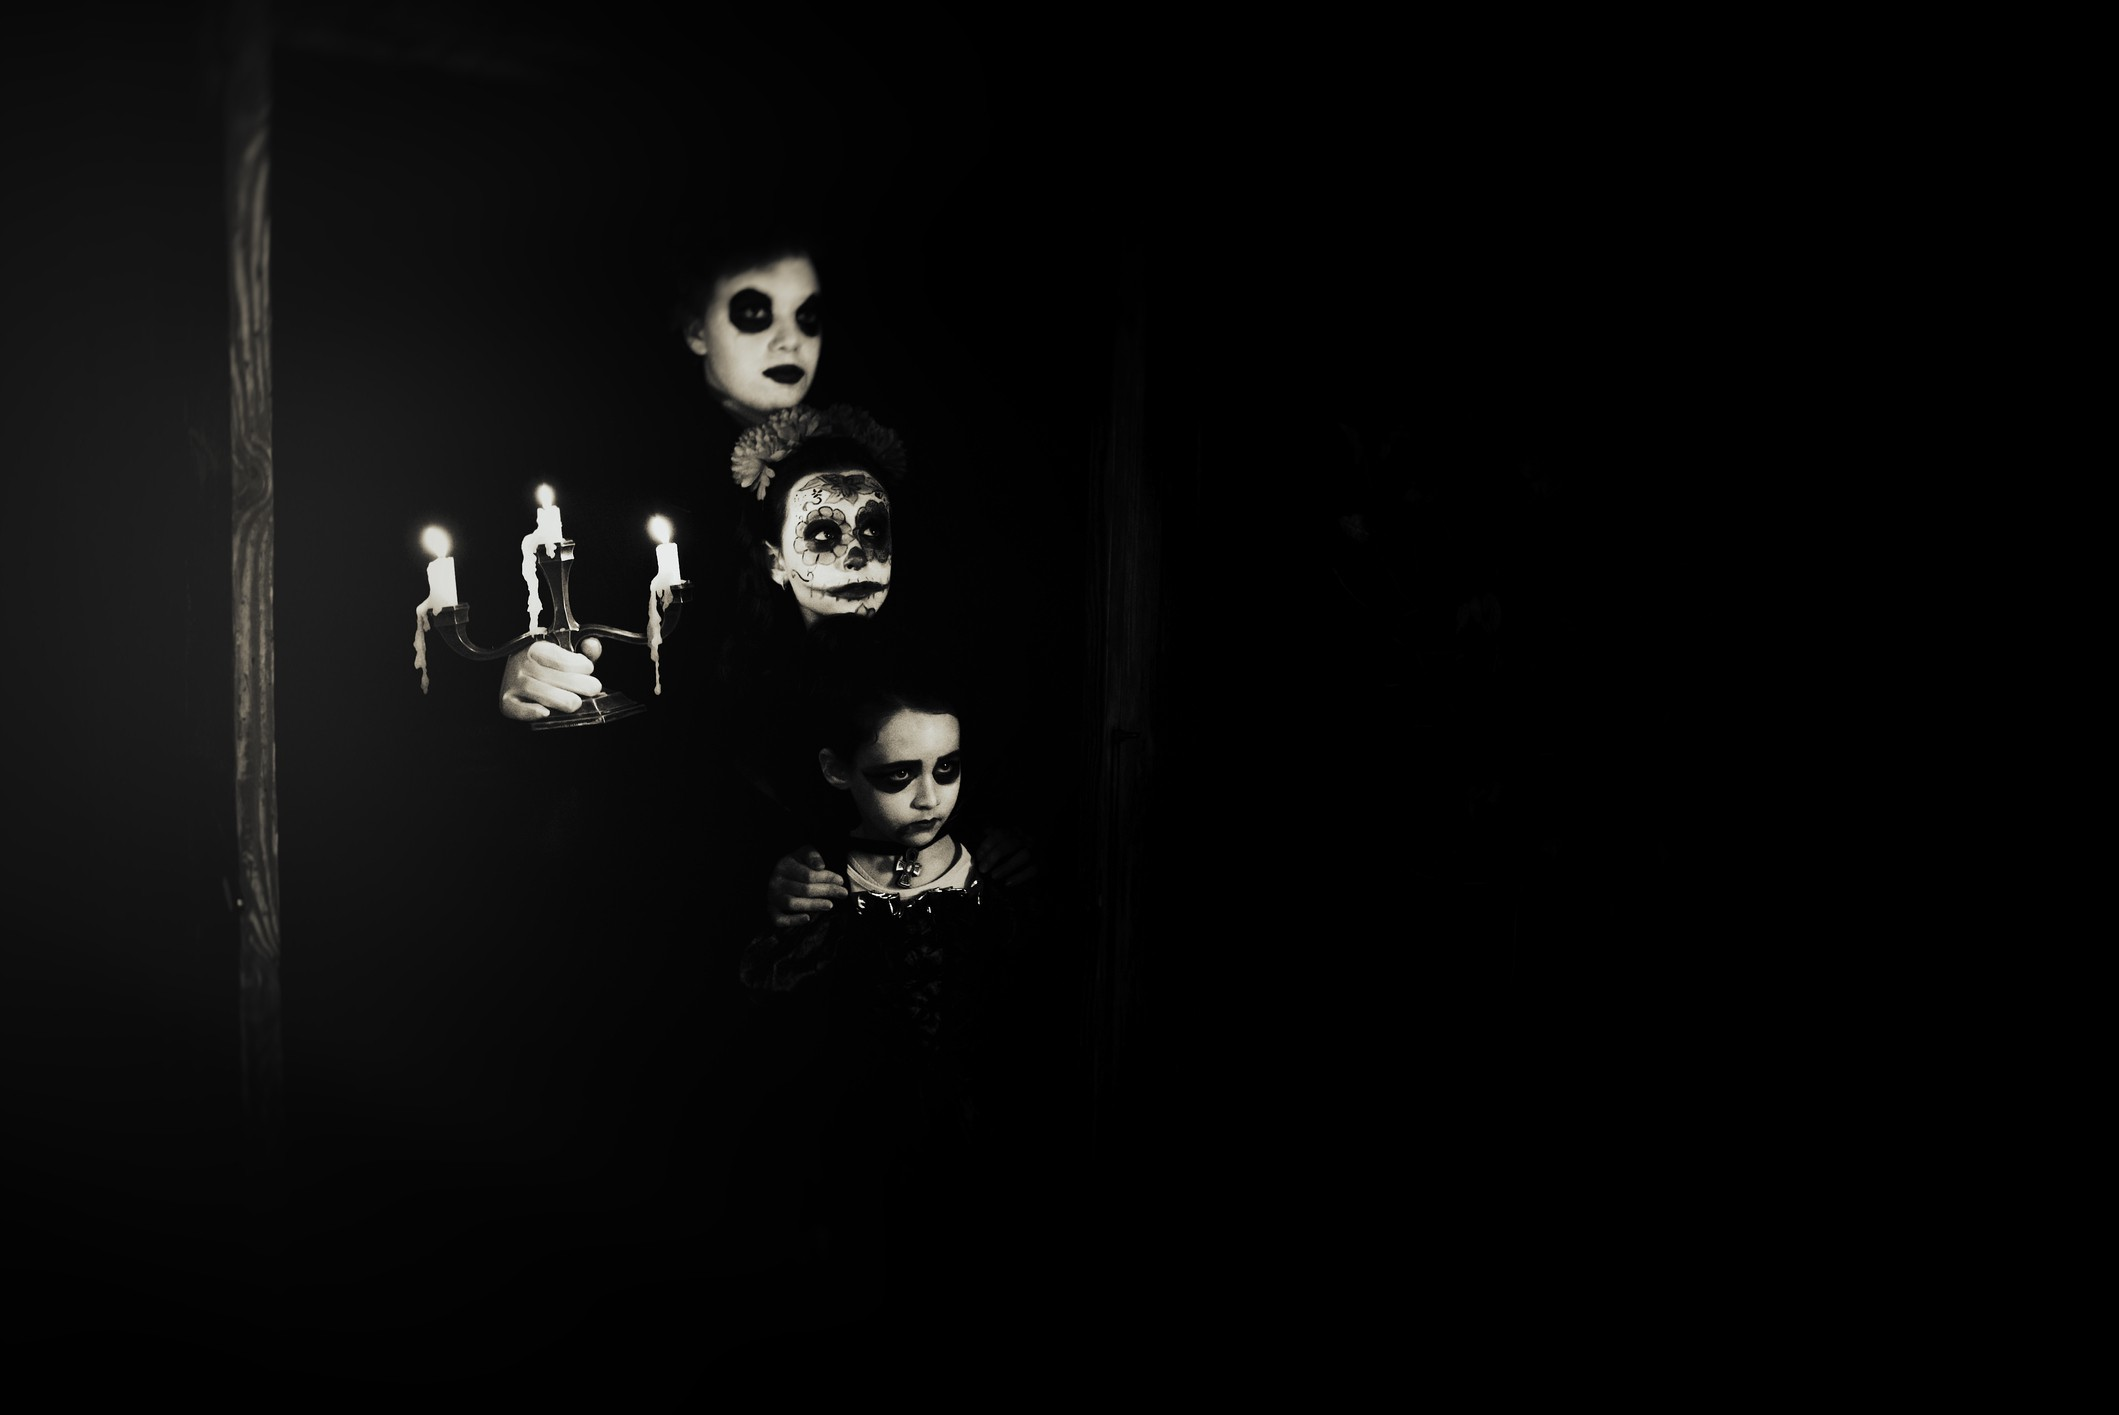 Black and white spooky image of floating Halloween faces.